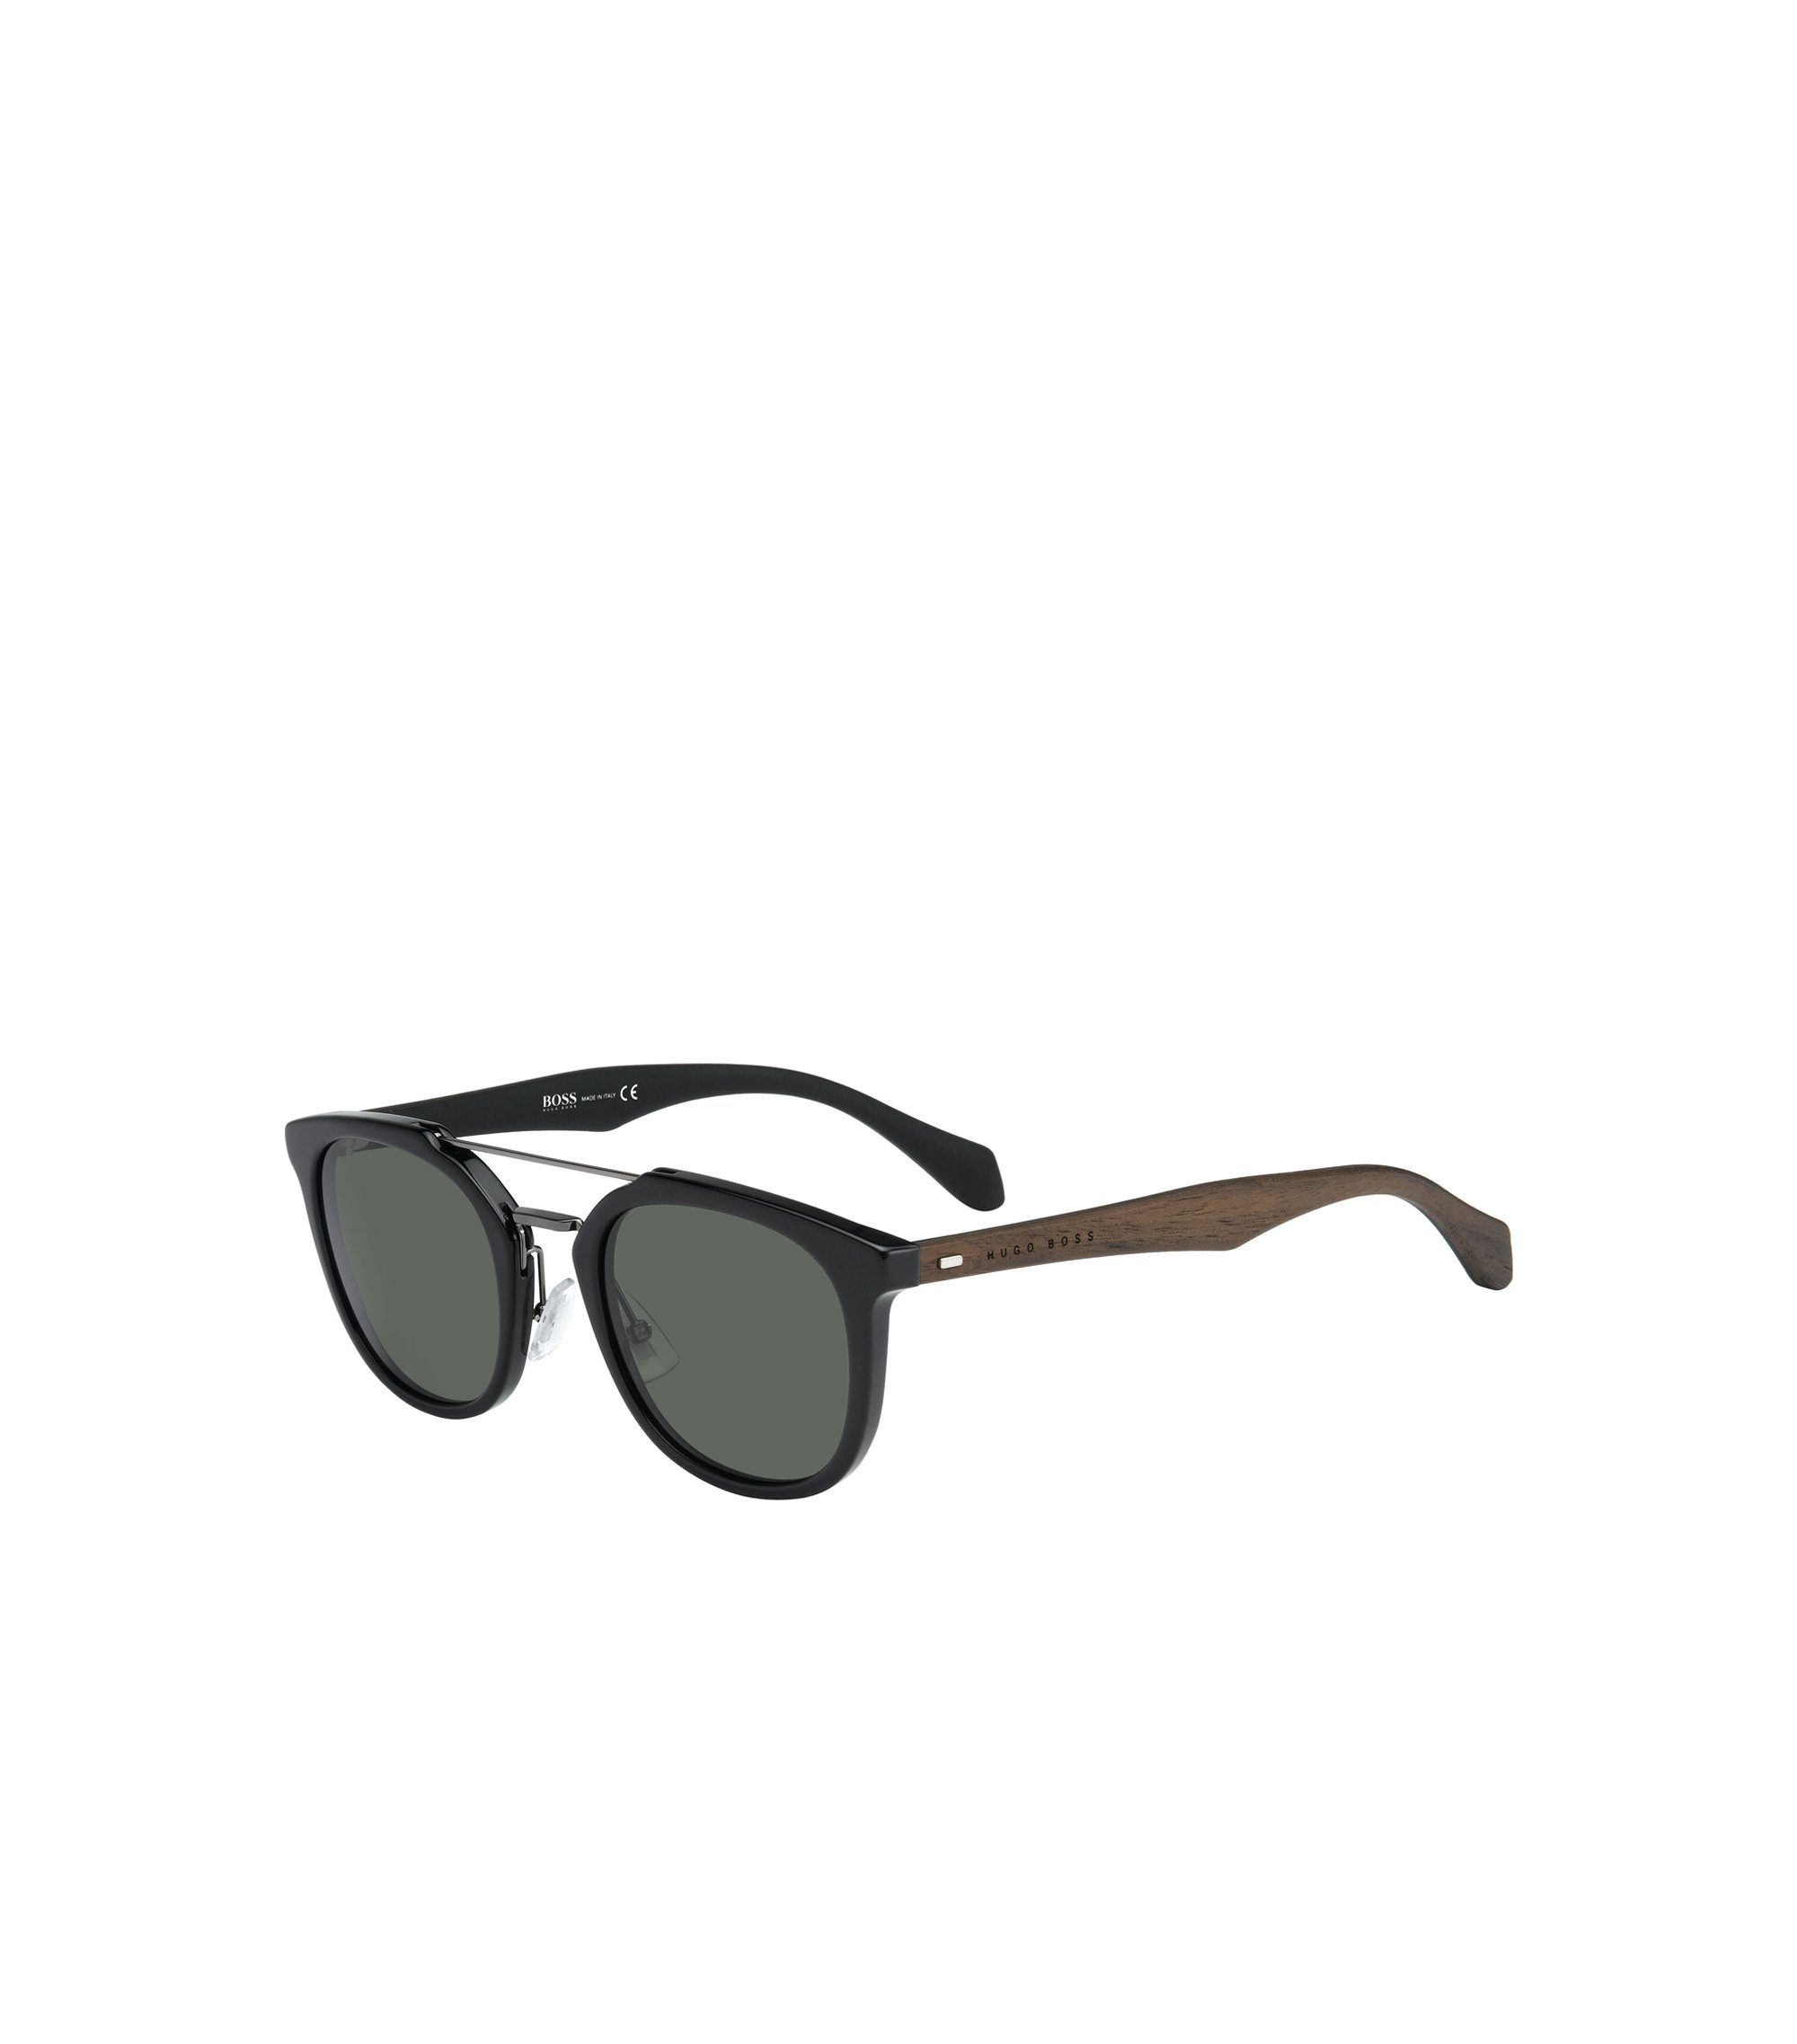 Gray Green Lens Clubmaster Sunglasses | BOSS 0777S, Assorted-Pre-Pack